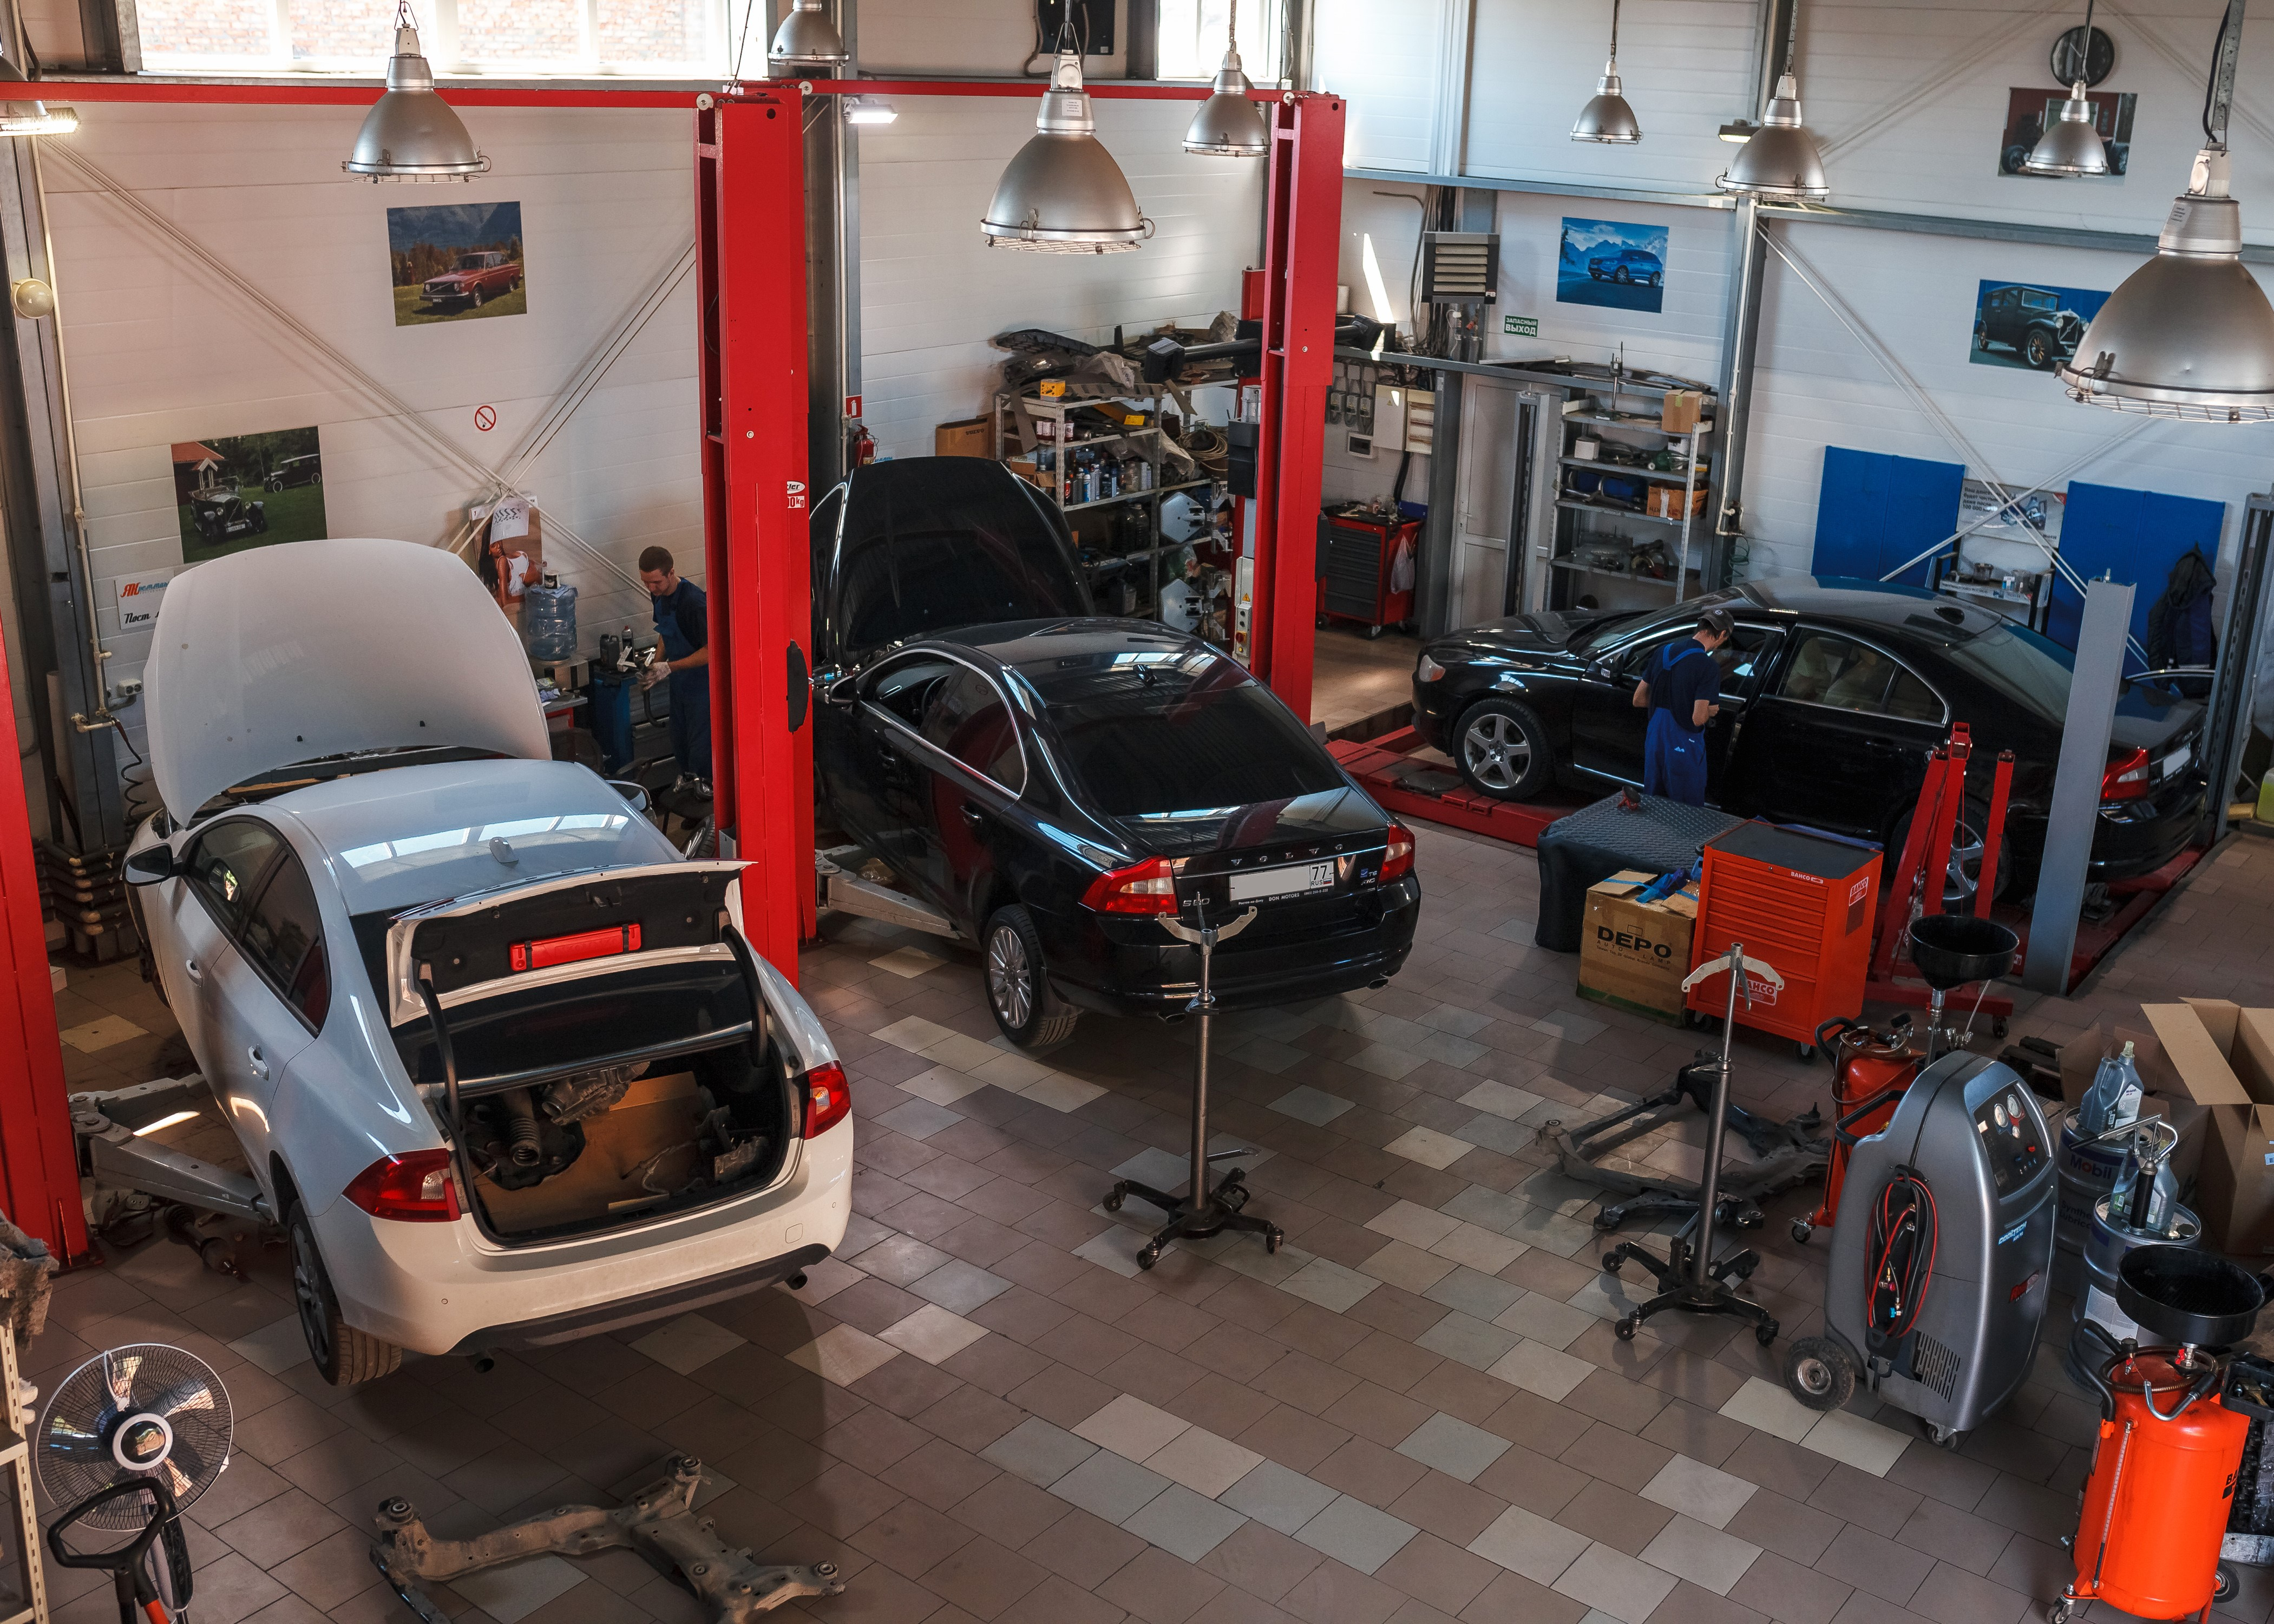 phoca_thumb_l_garage8